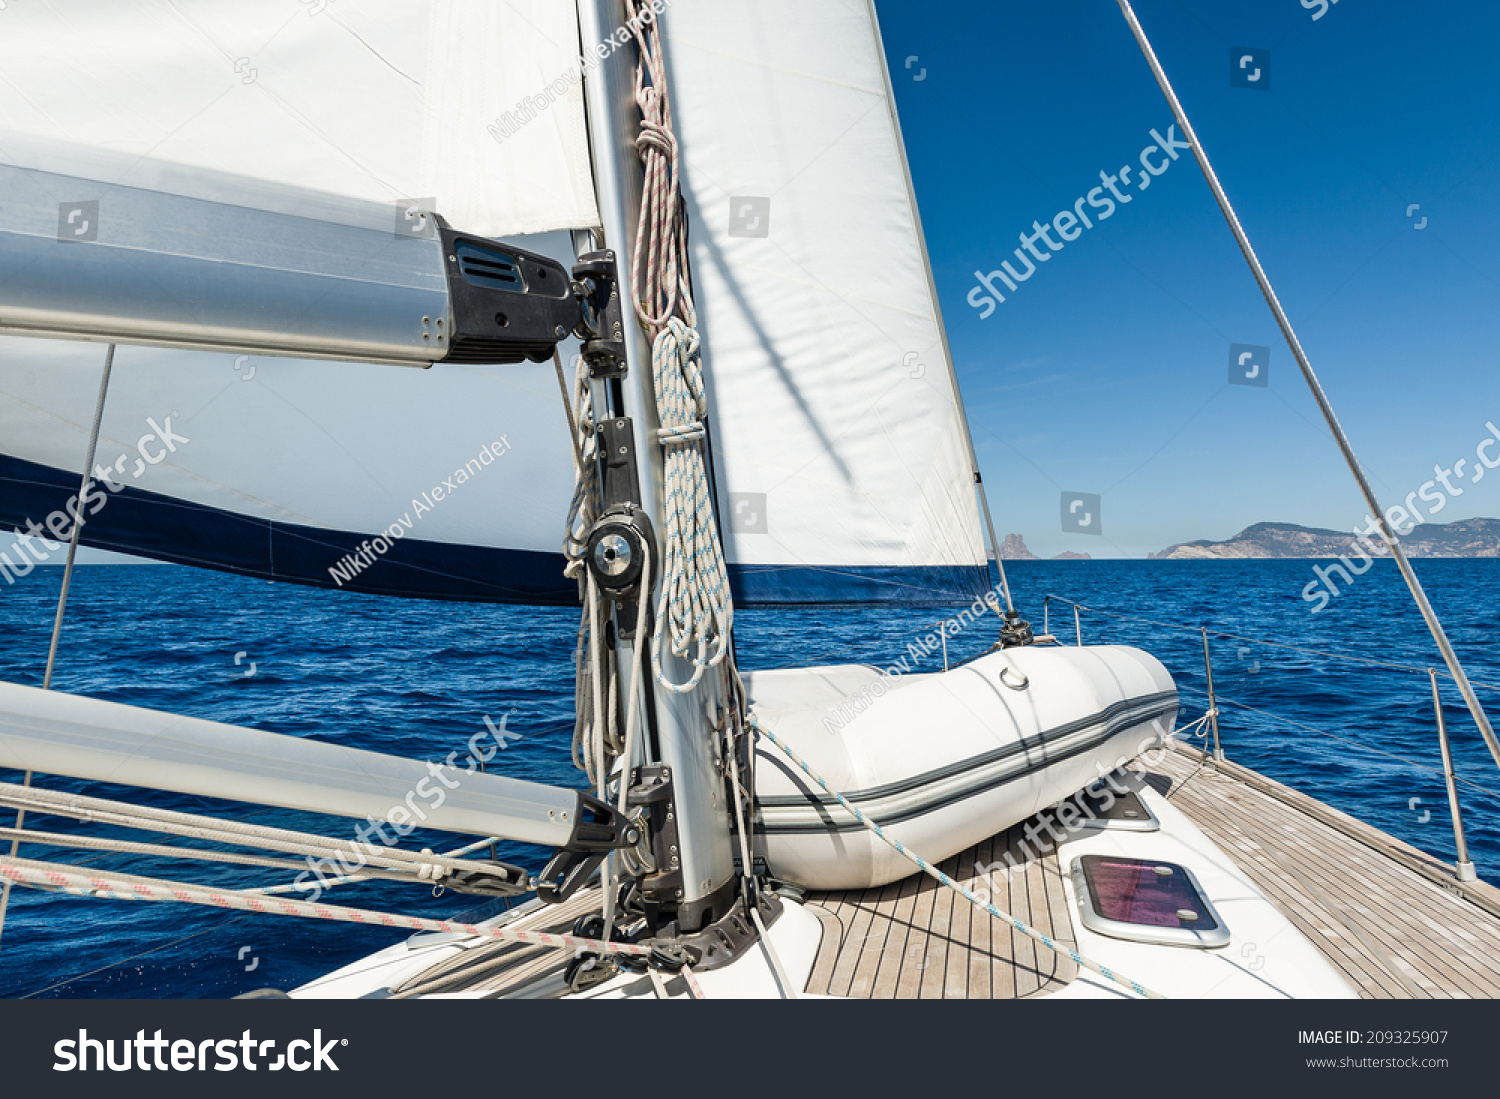 stock-photo-sailing-yacht-going-on-her-sails-in-calm-weather-with-dinghy-on-board-209325907